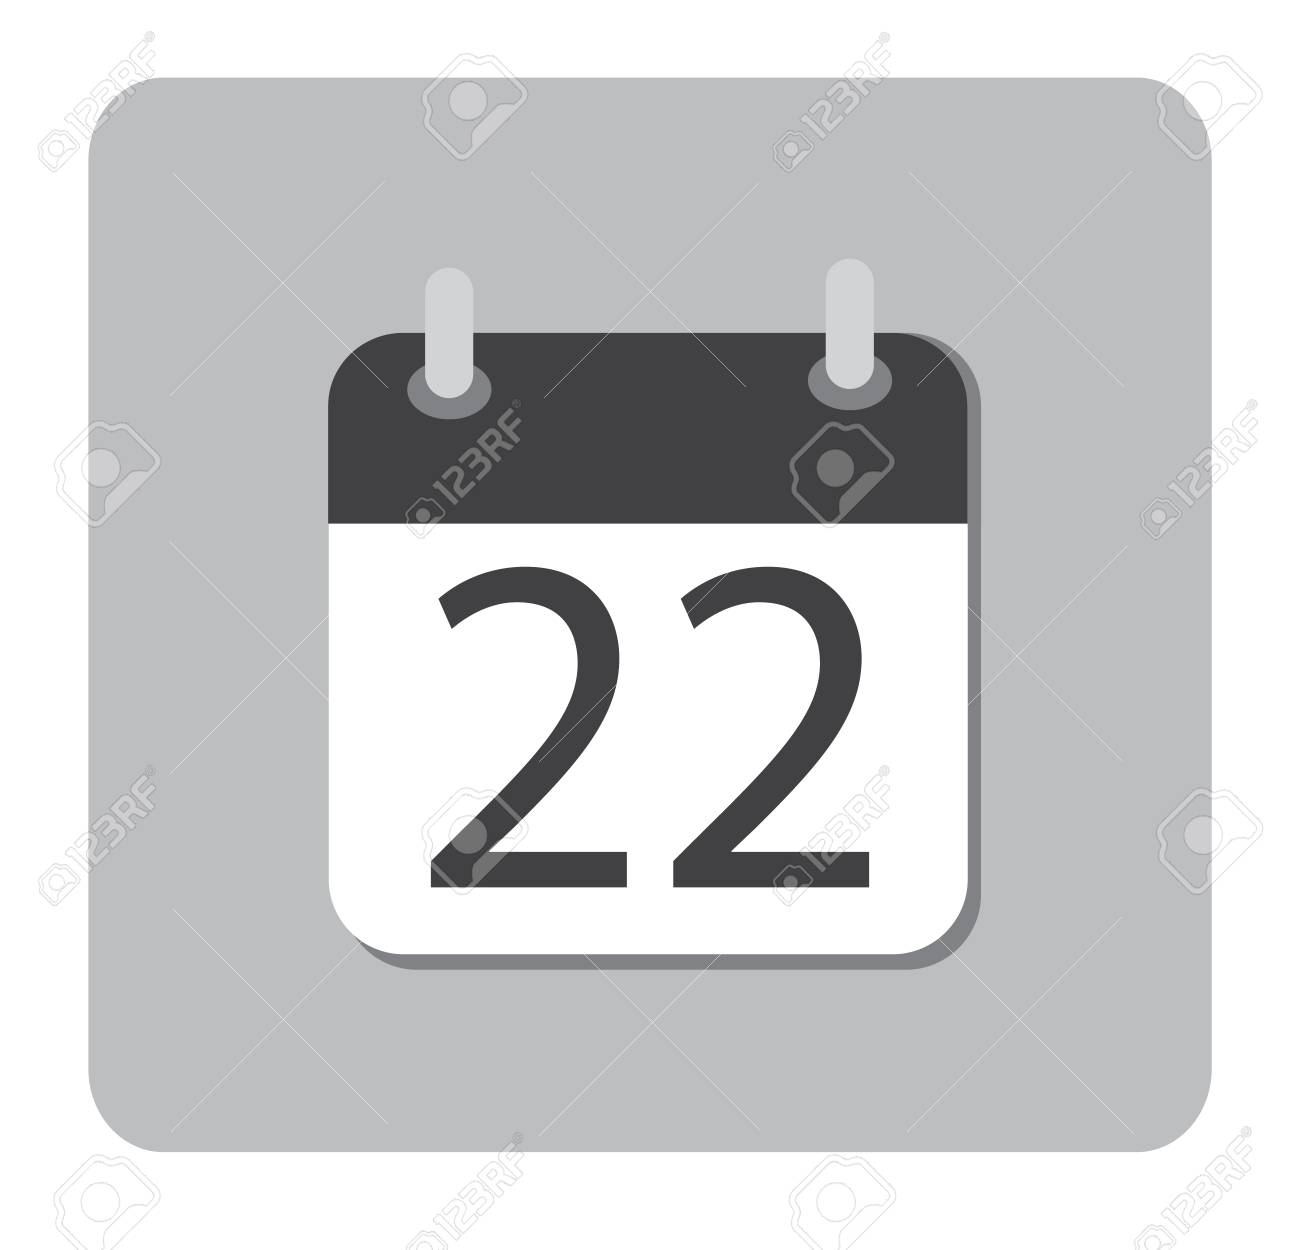 b373e576a051ed Calendar icon flat December 22. 22 December date icon. 22 Dec sign. Stock